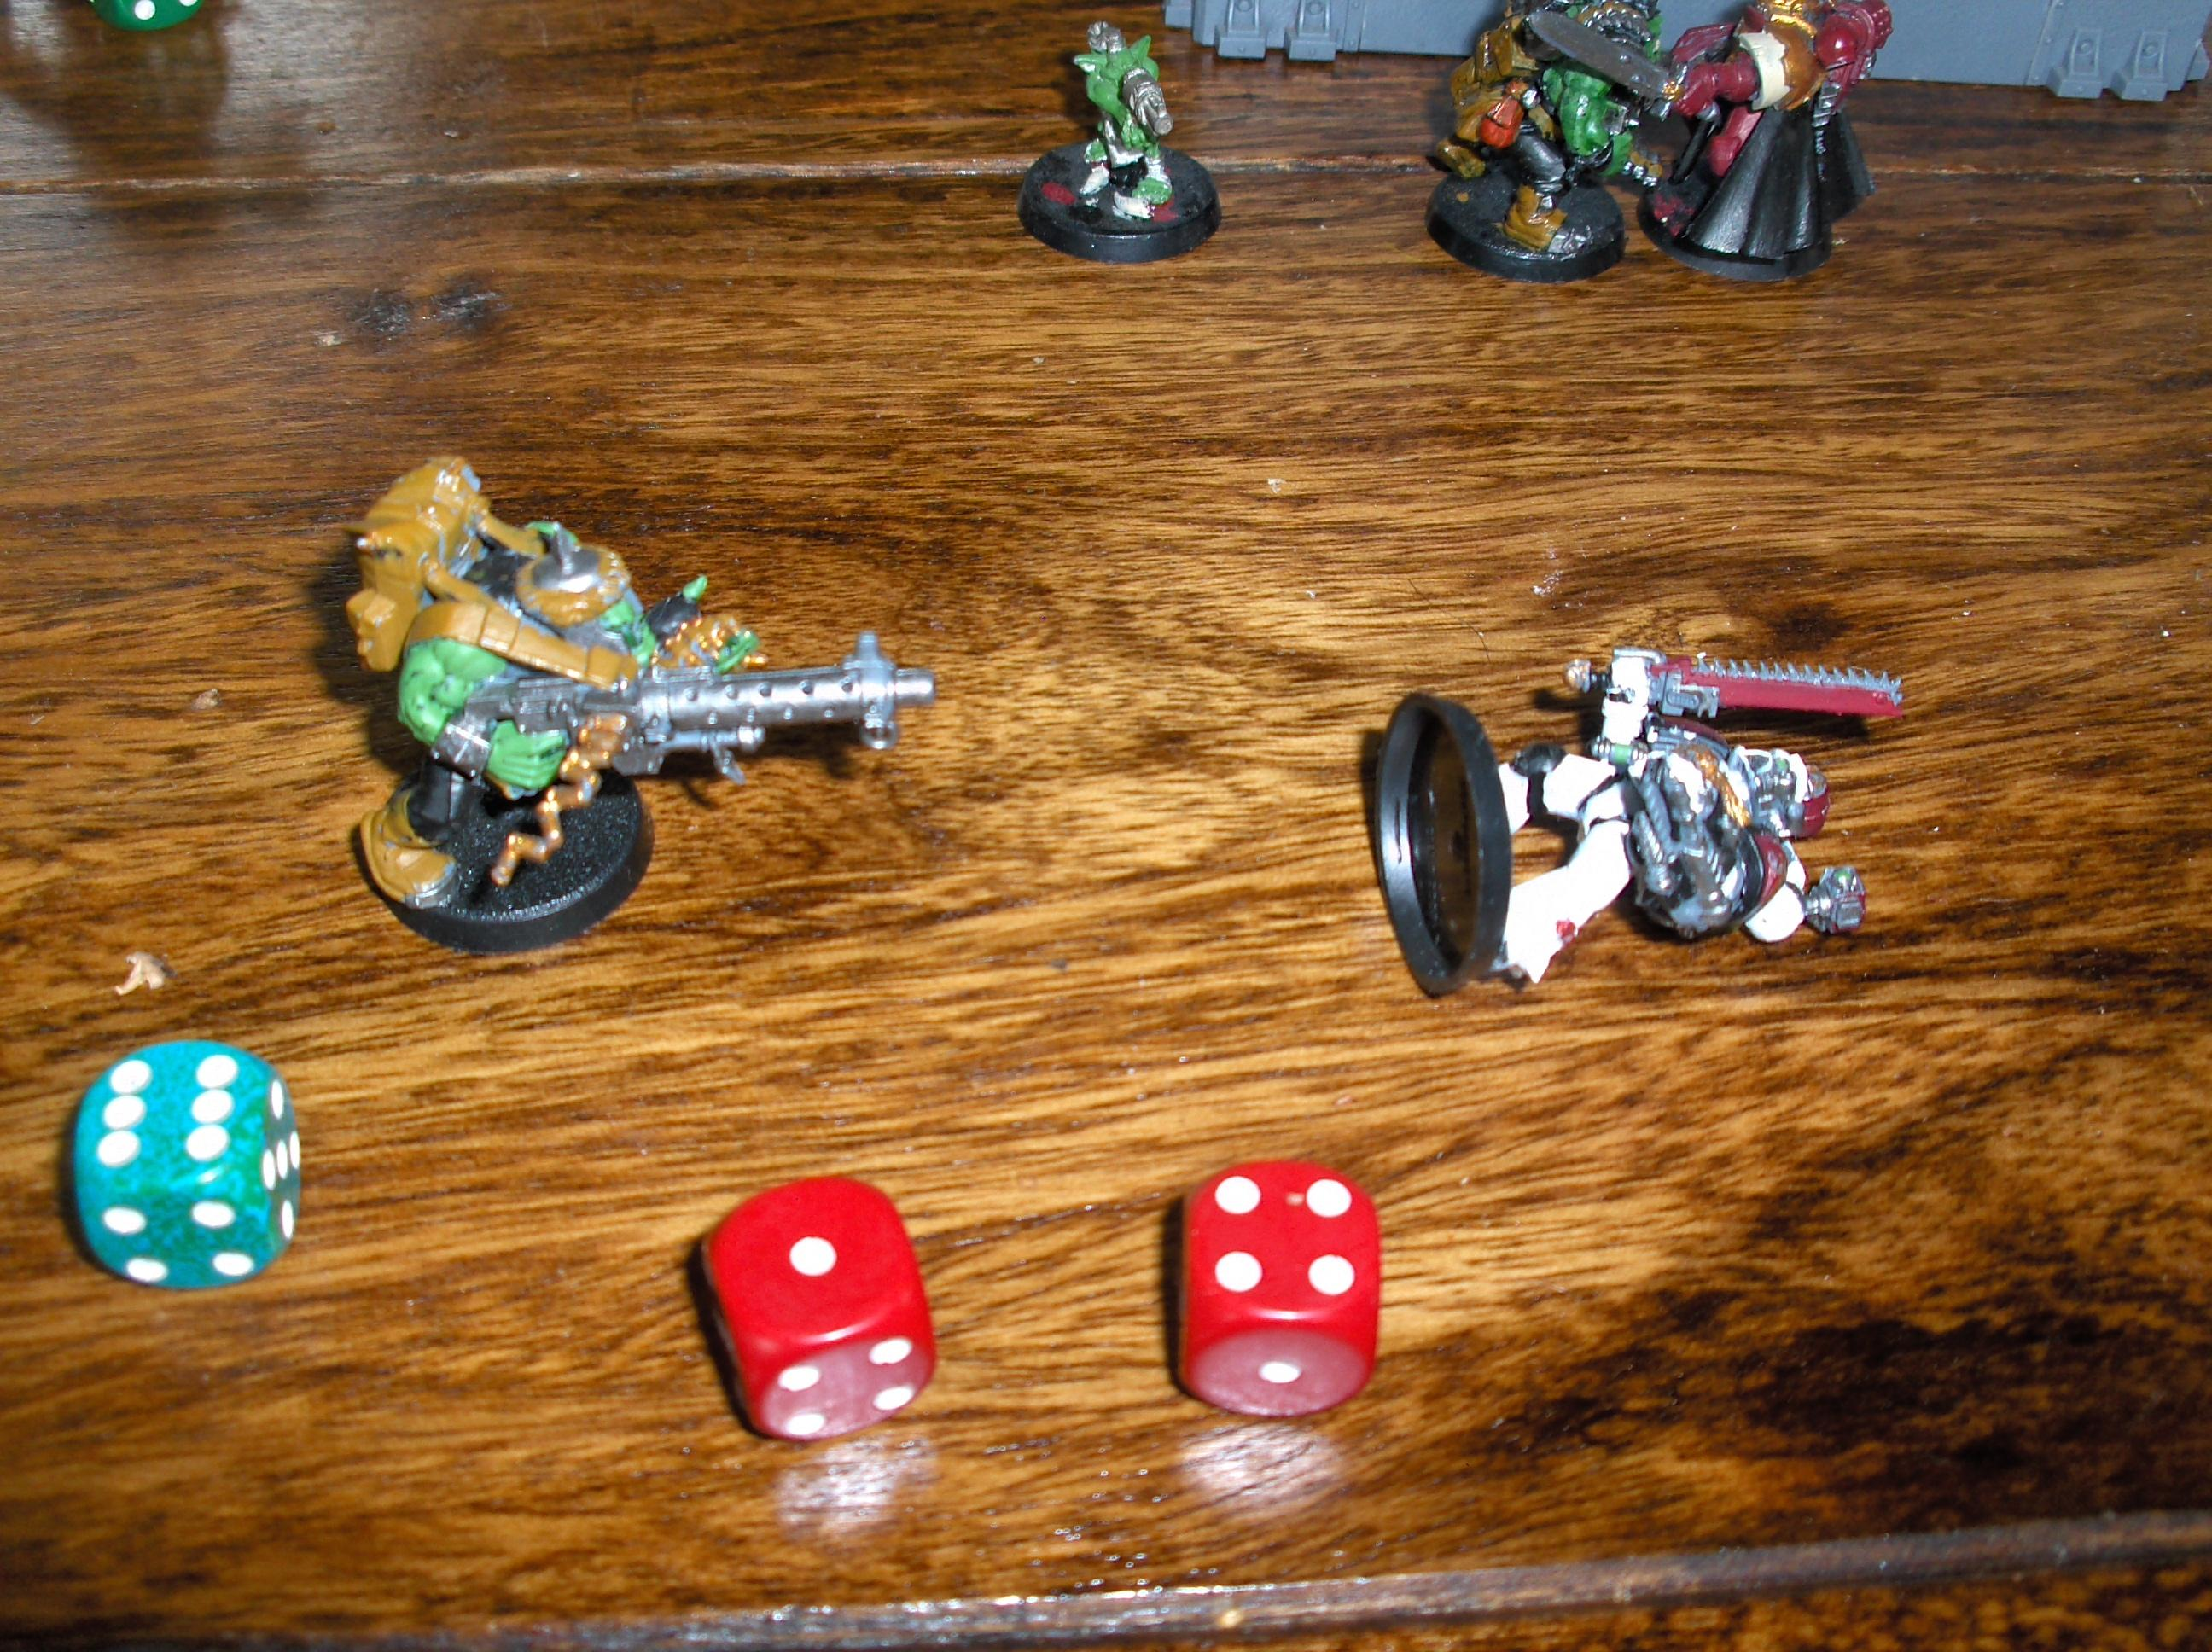 Battle Report, Dice, Orks, Space Marines, Warhammer 40,000